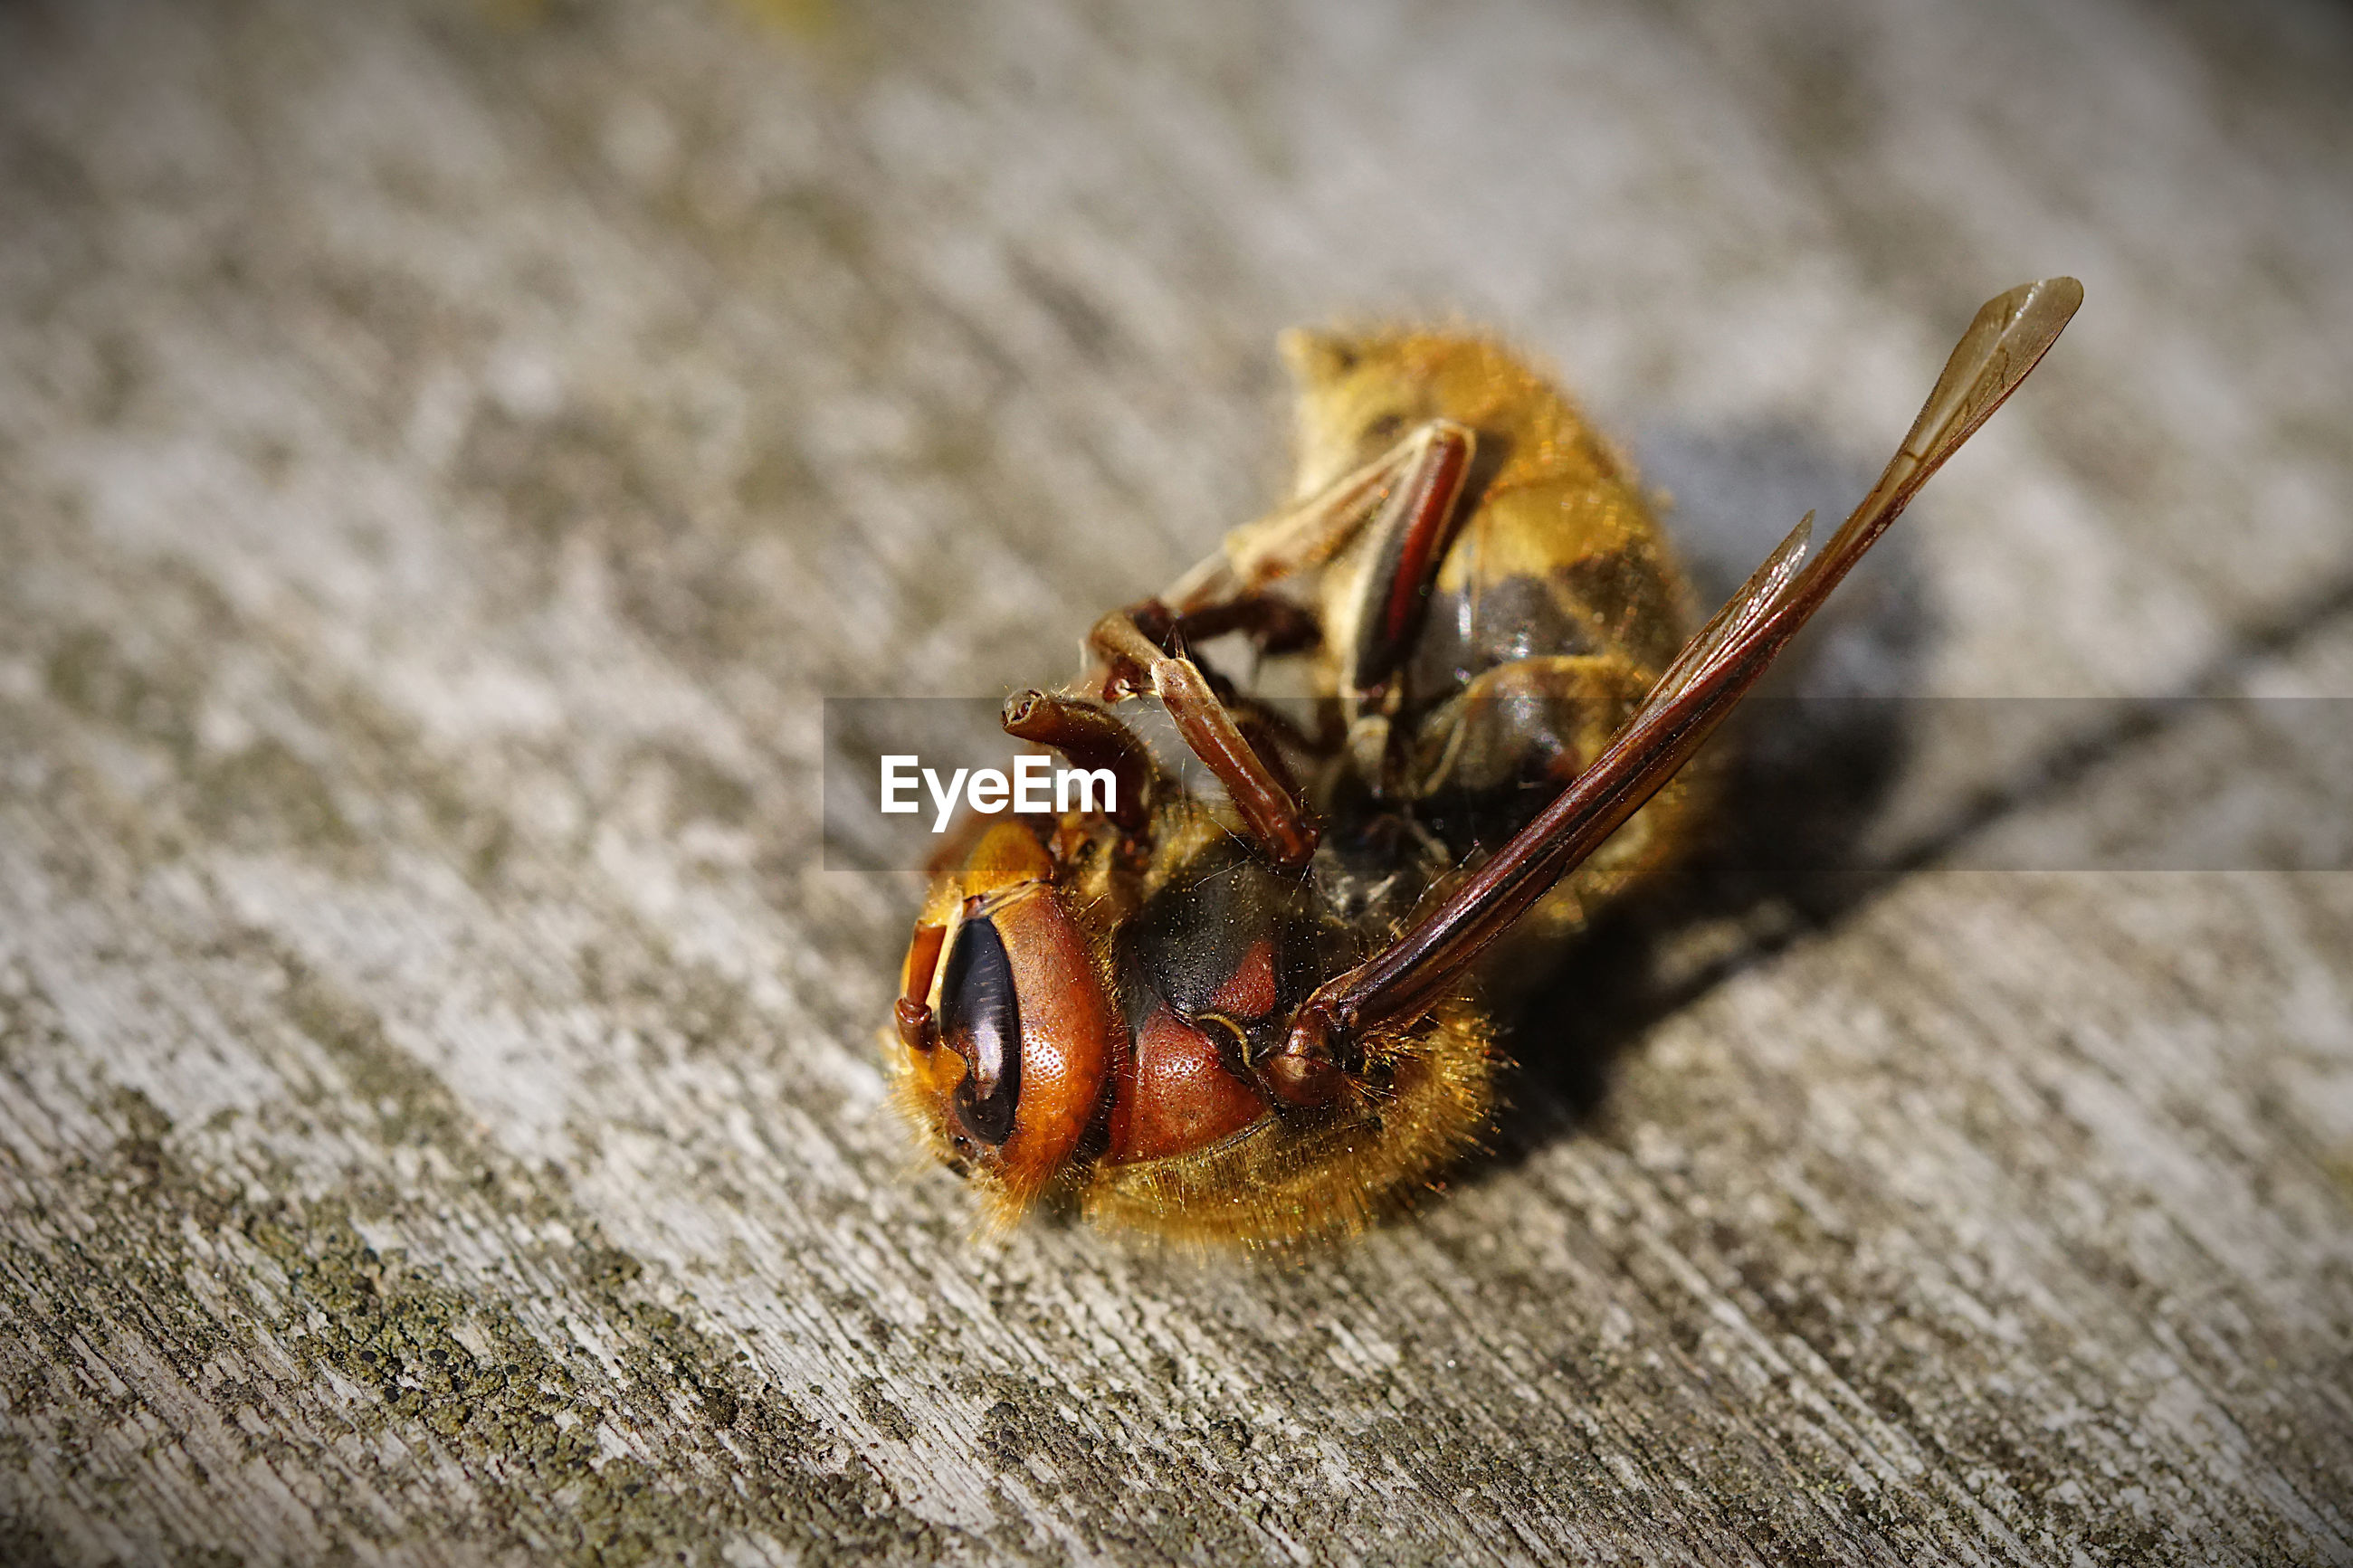 CLOSE-UP OF BEE ON WOODEN FLOOR